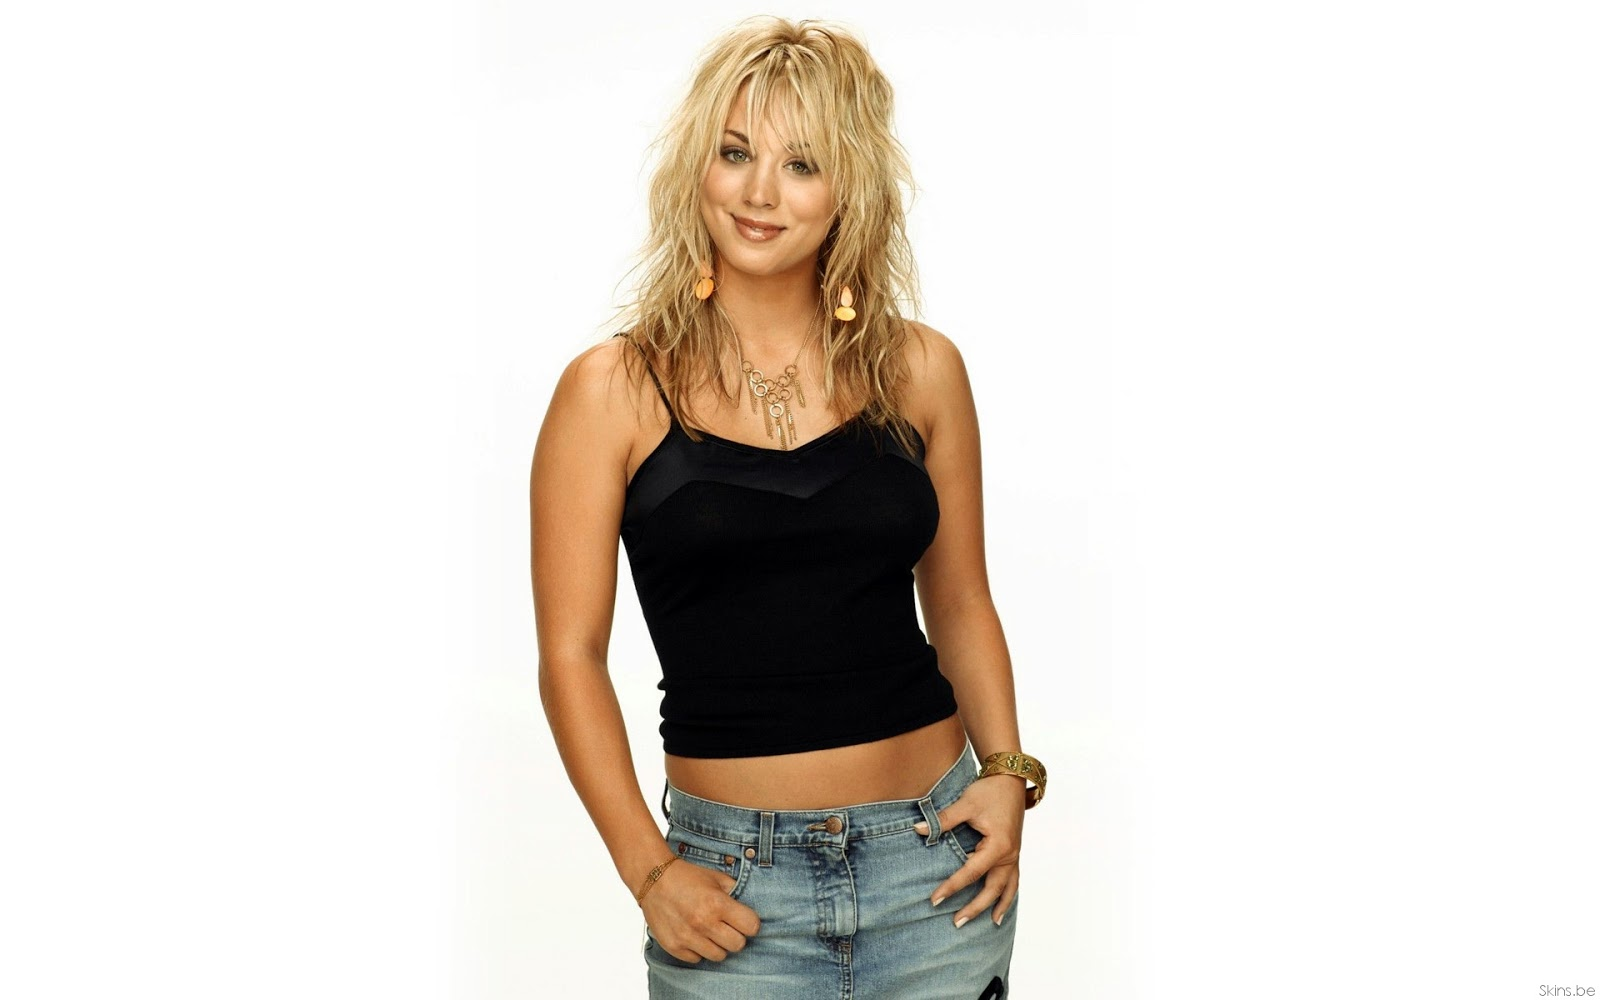 hq celebrity pictures kaley cuoco hot hd wallpapers